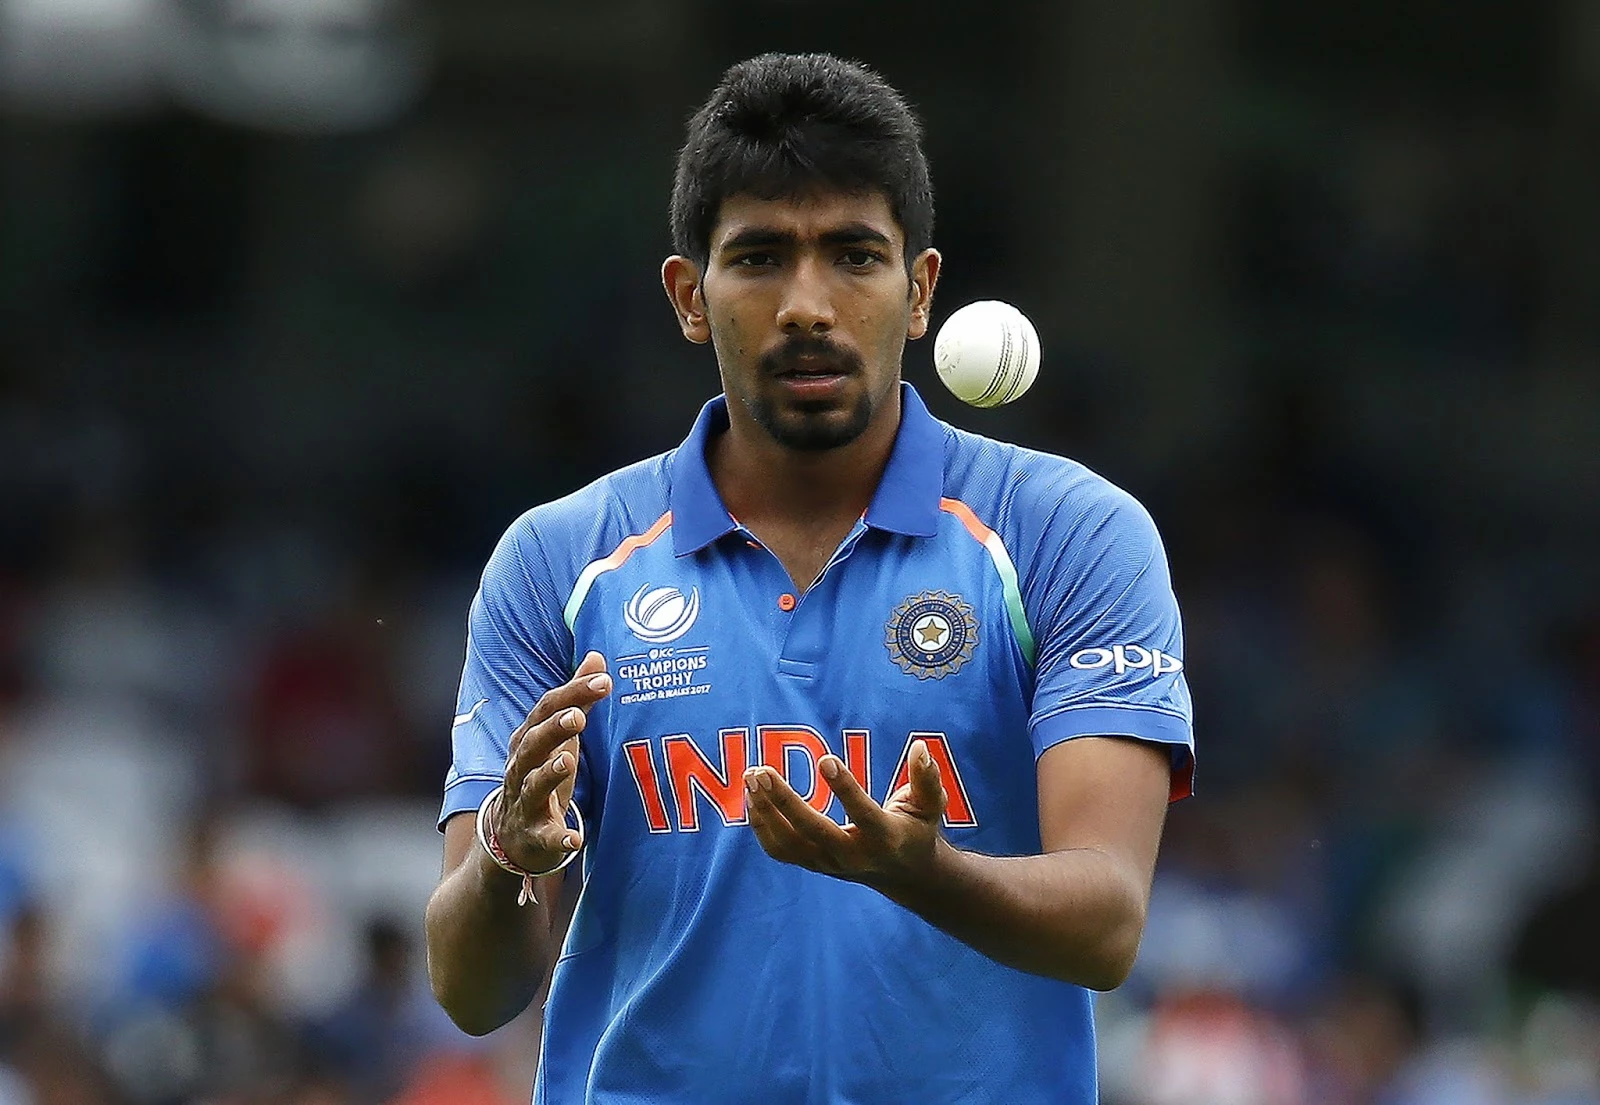 Jasprit Bumrah The Action Maker In 2020 Man Of The Match Cricket Teams Bowler